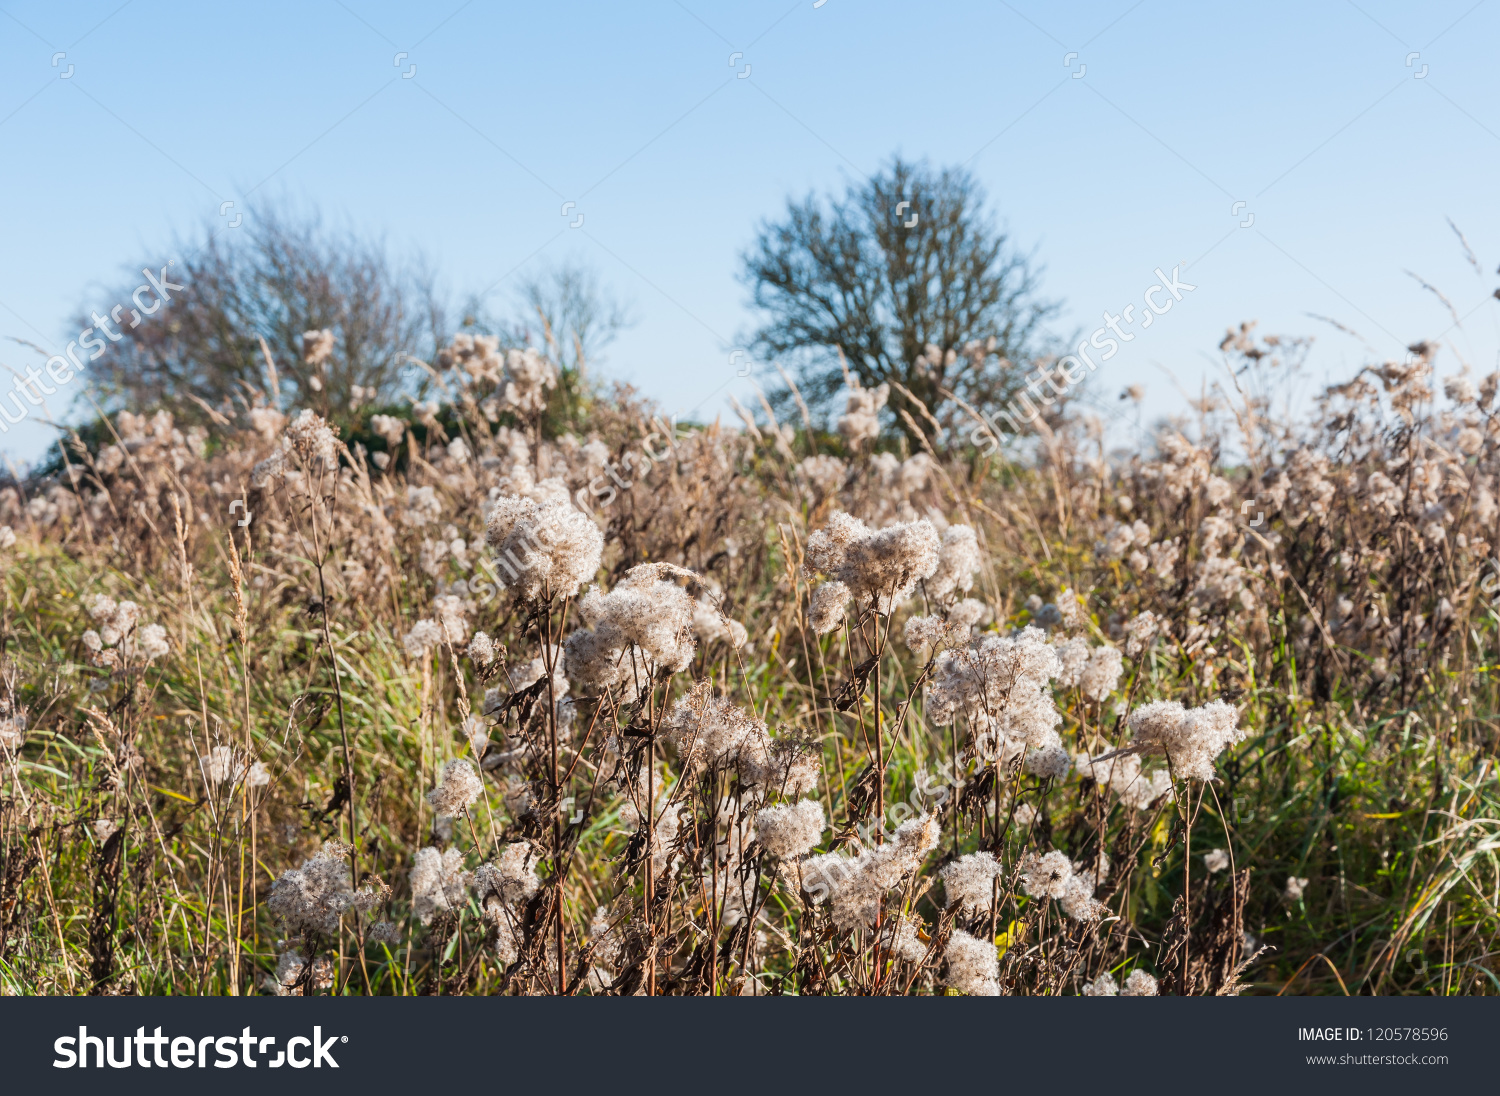 Fluffy Seed Heads At Dry Goldenrod Plants In A Natural Reserve.